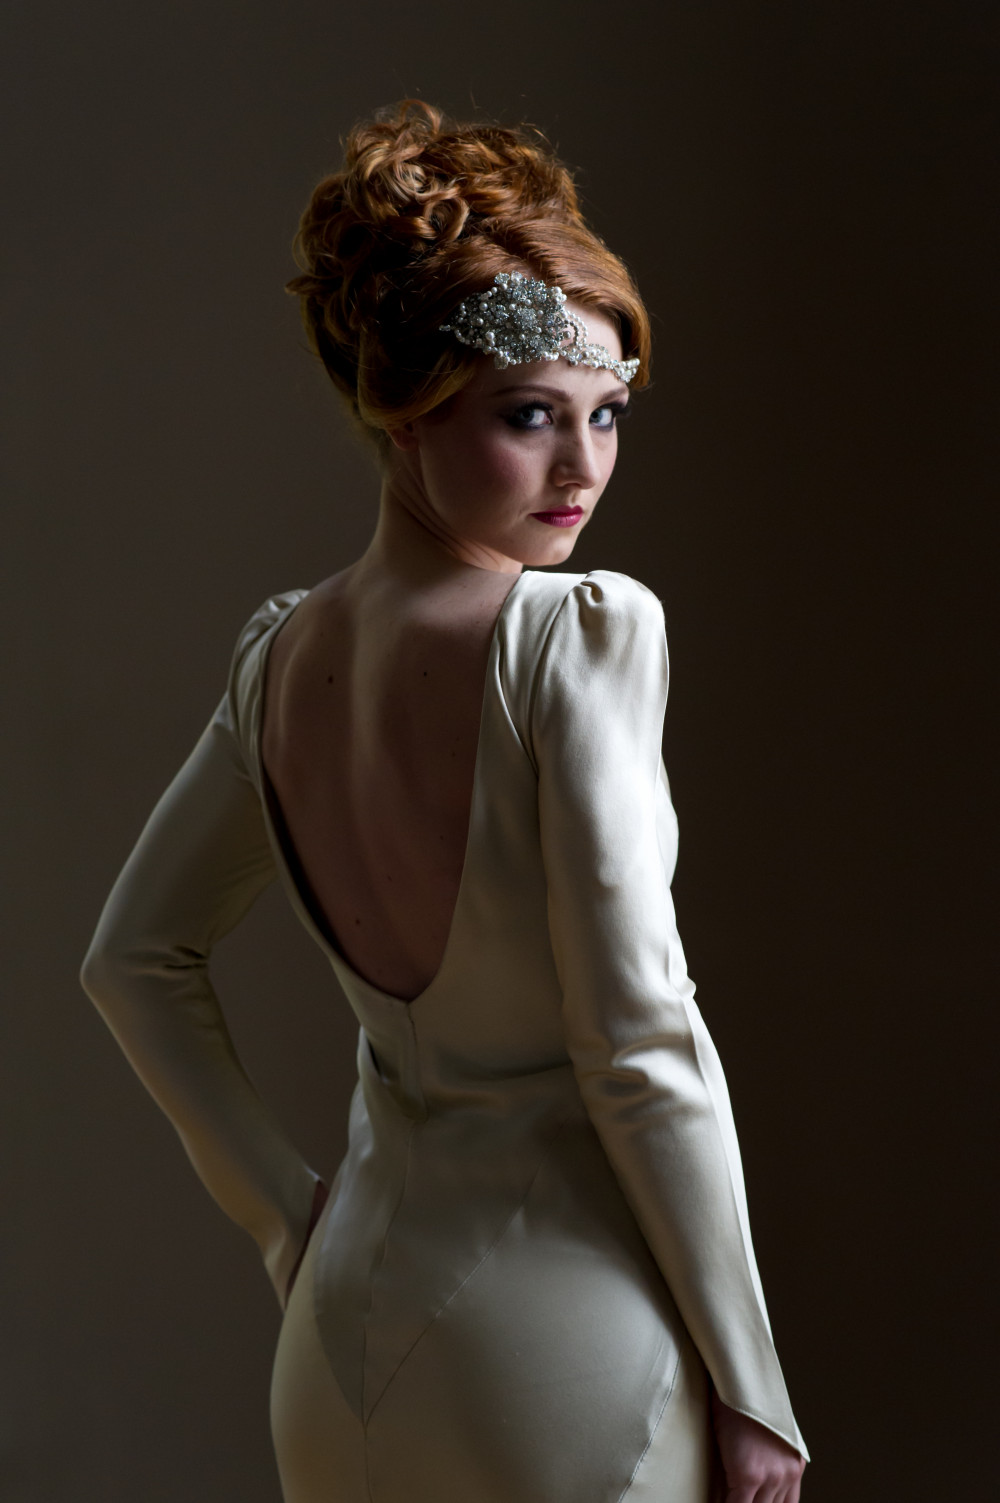 Modern Vintage Styling for Charlotte at 'That Amazing Place' in Essex - Make Me Bridal Artist: Beautiful Hair 4 Weddings. Photography by: Scott Johnson. #vintage